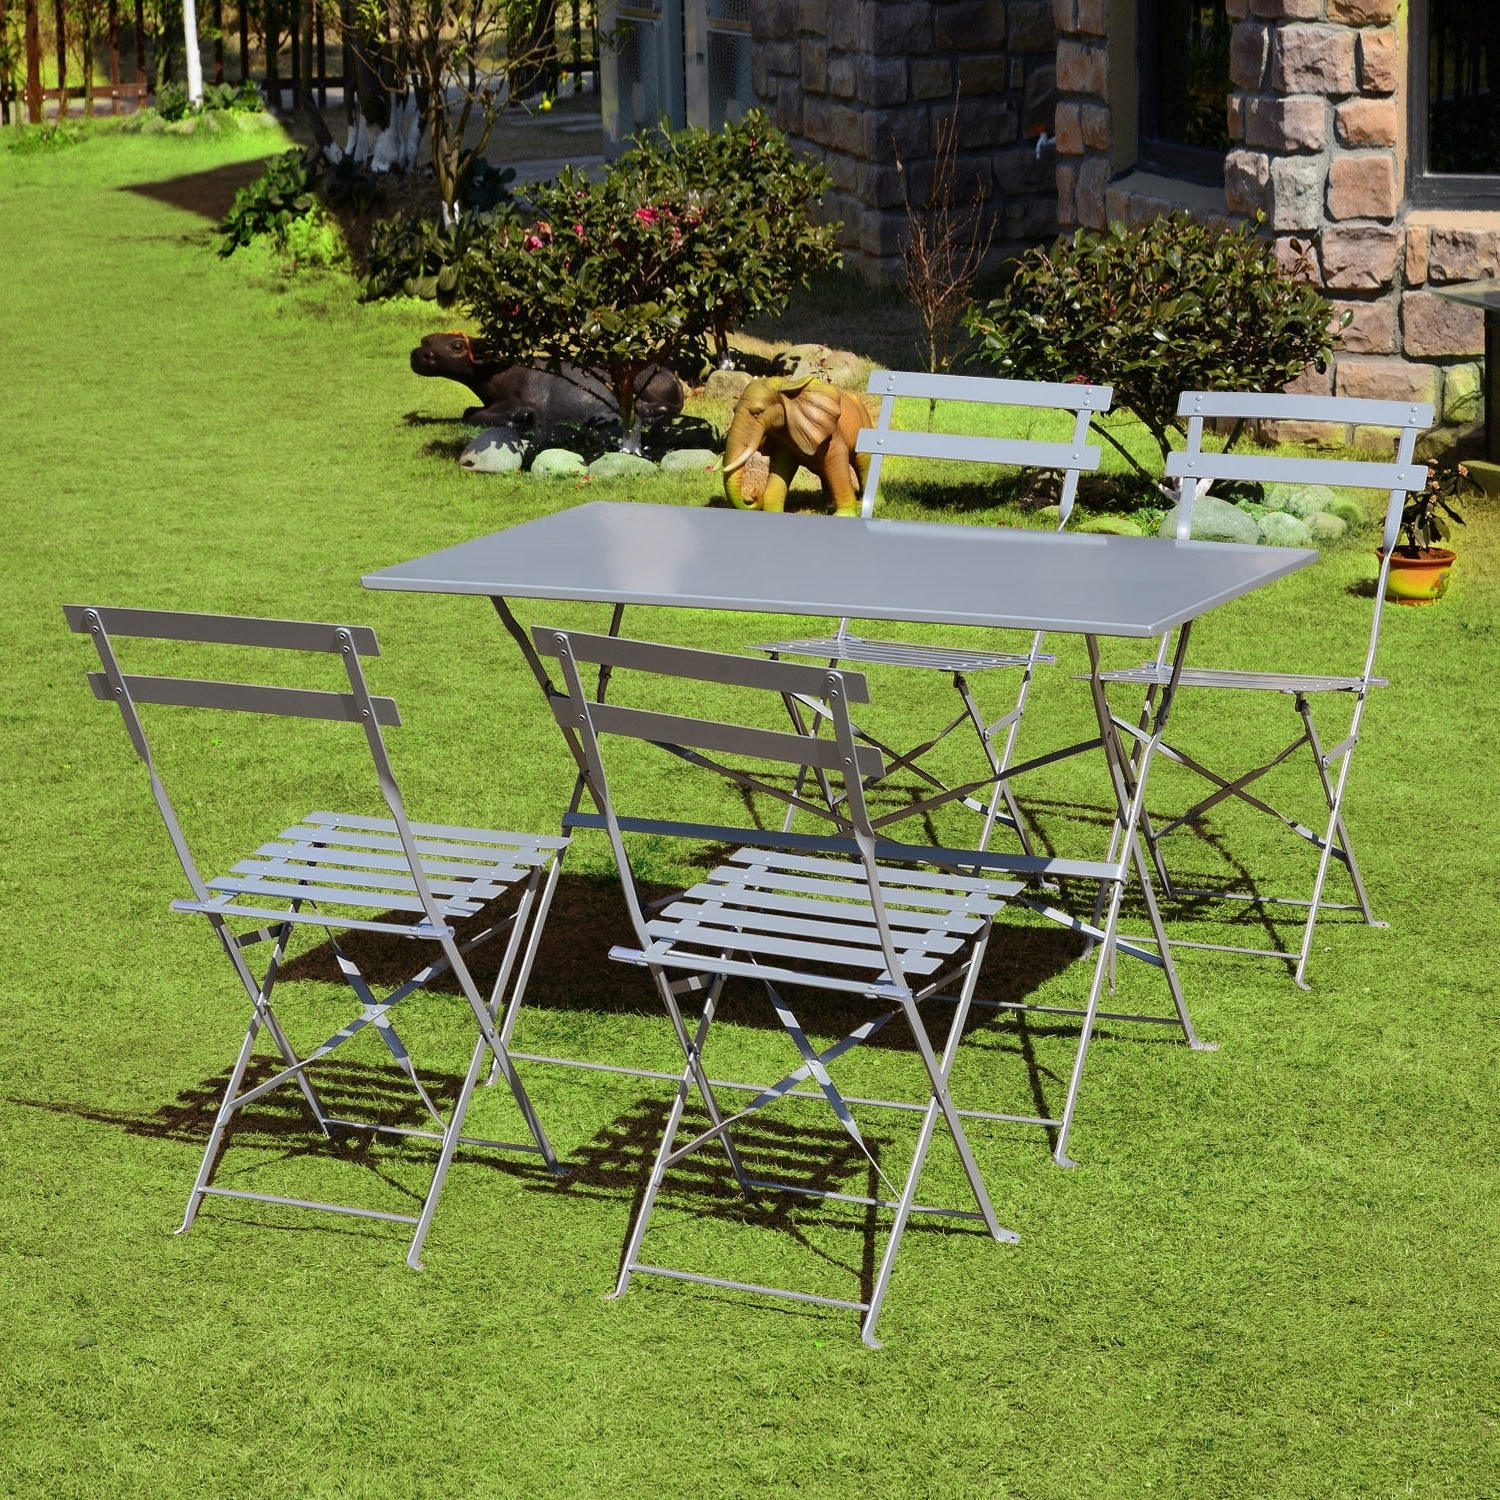 Current Garden Dining Tables With Regard To 5Pc Outdoor Garden Furniture Set Patio Folding Dining Table Chairs (View 5 of 25)